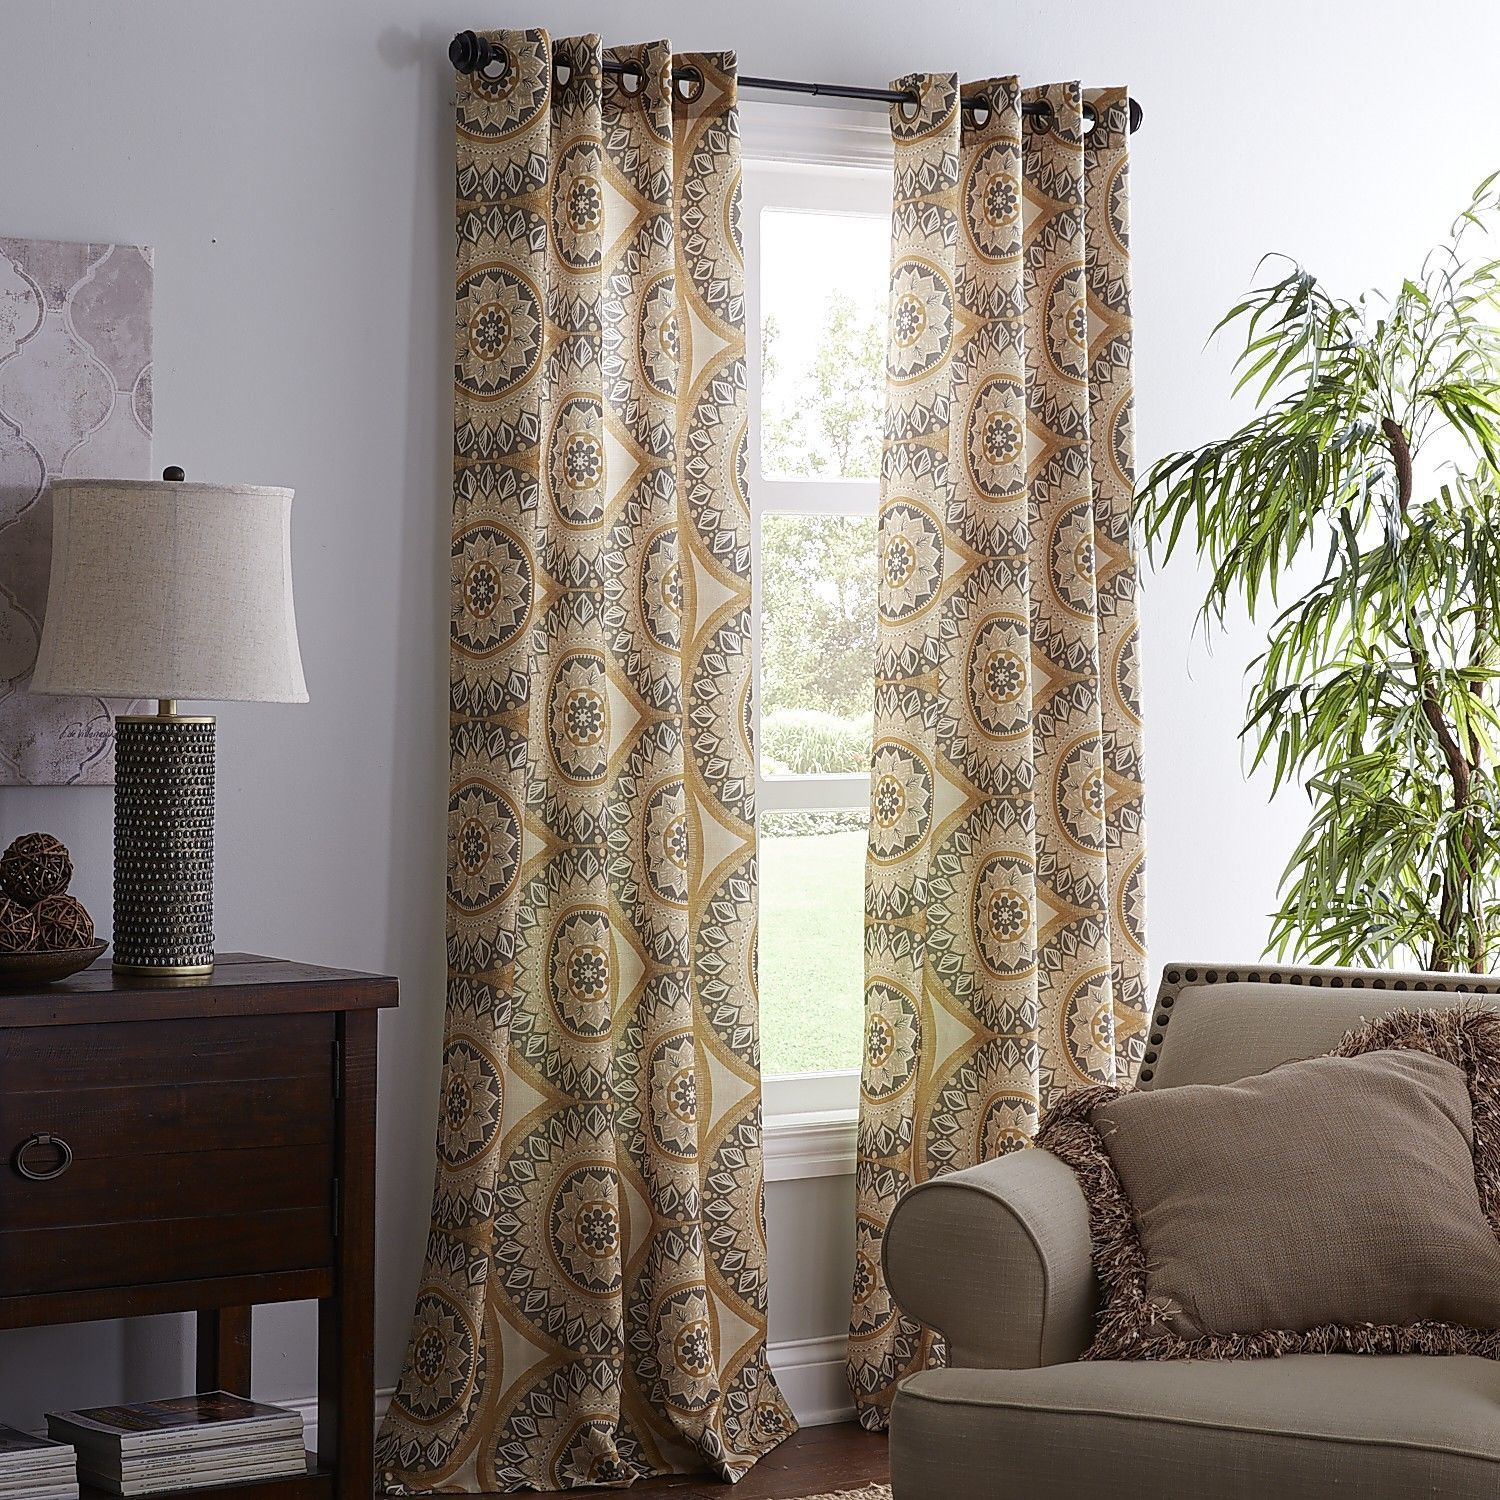 Suzani Print Curtain Luxury Curtains Curtains With Blinds Layered Curtains